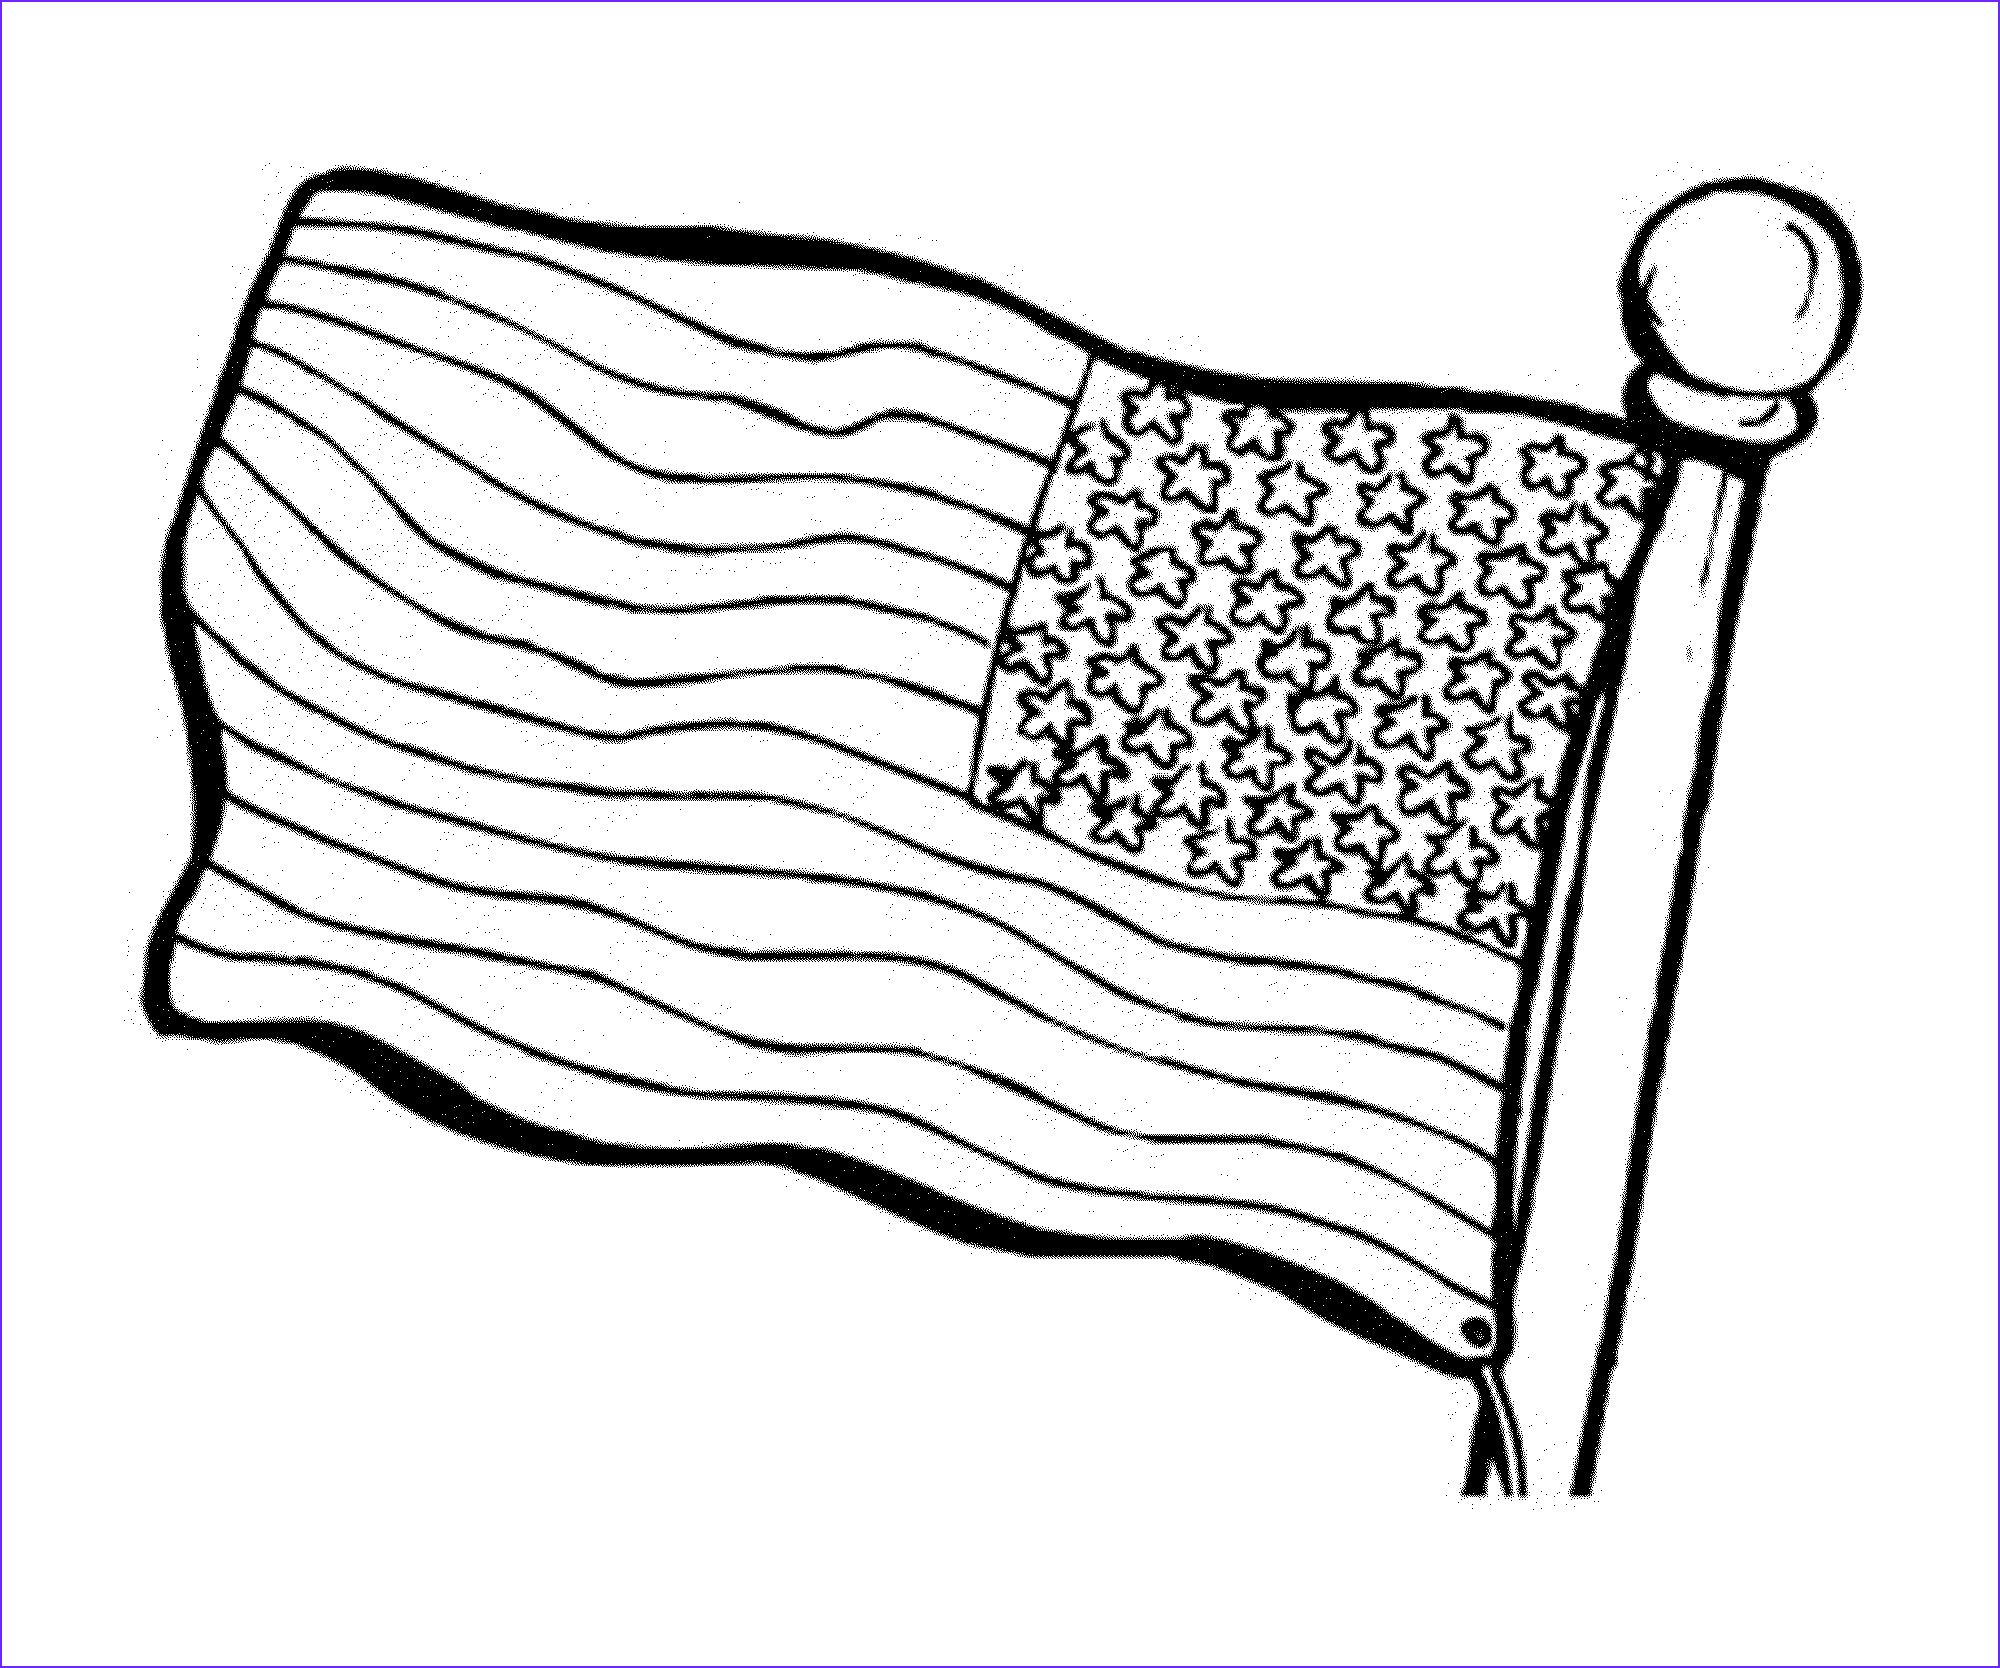 American Flag Coloring Page New Stock original American Flag Coloring Page